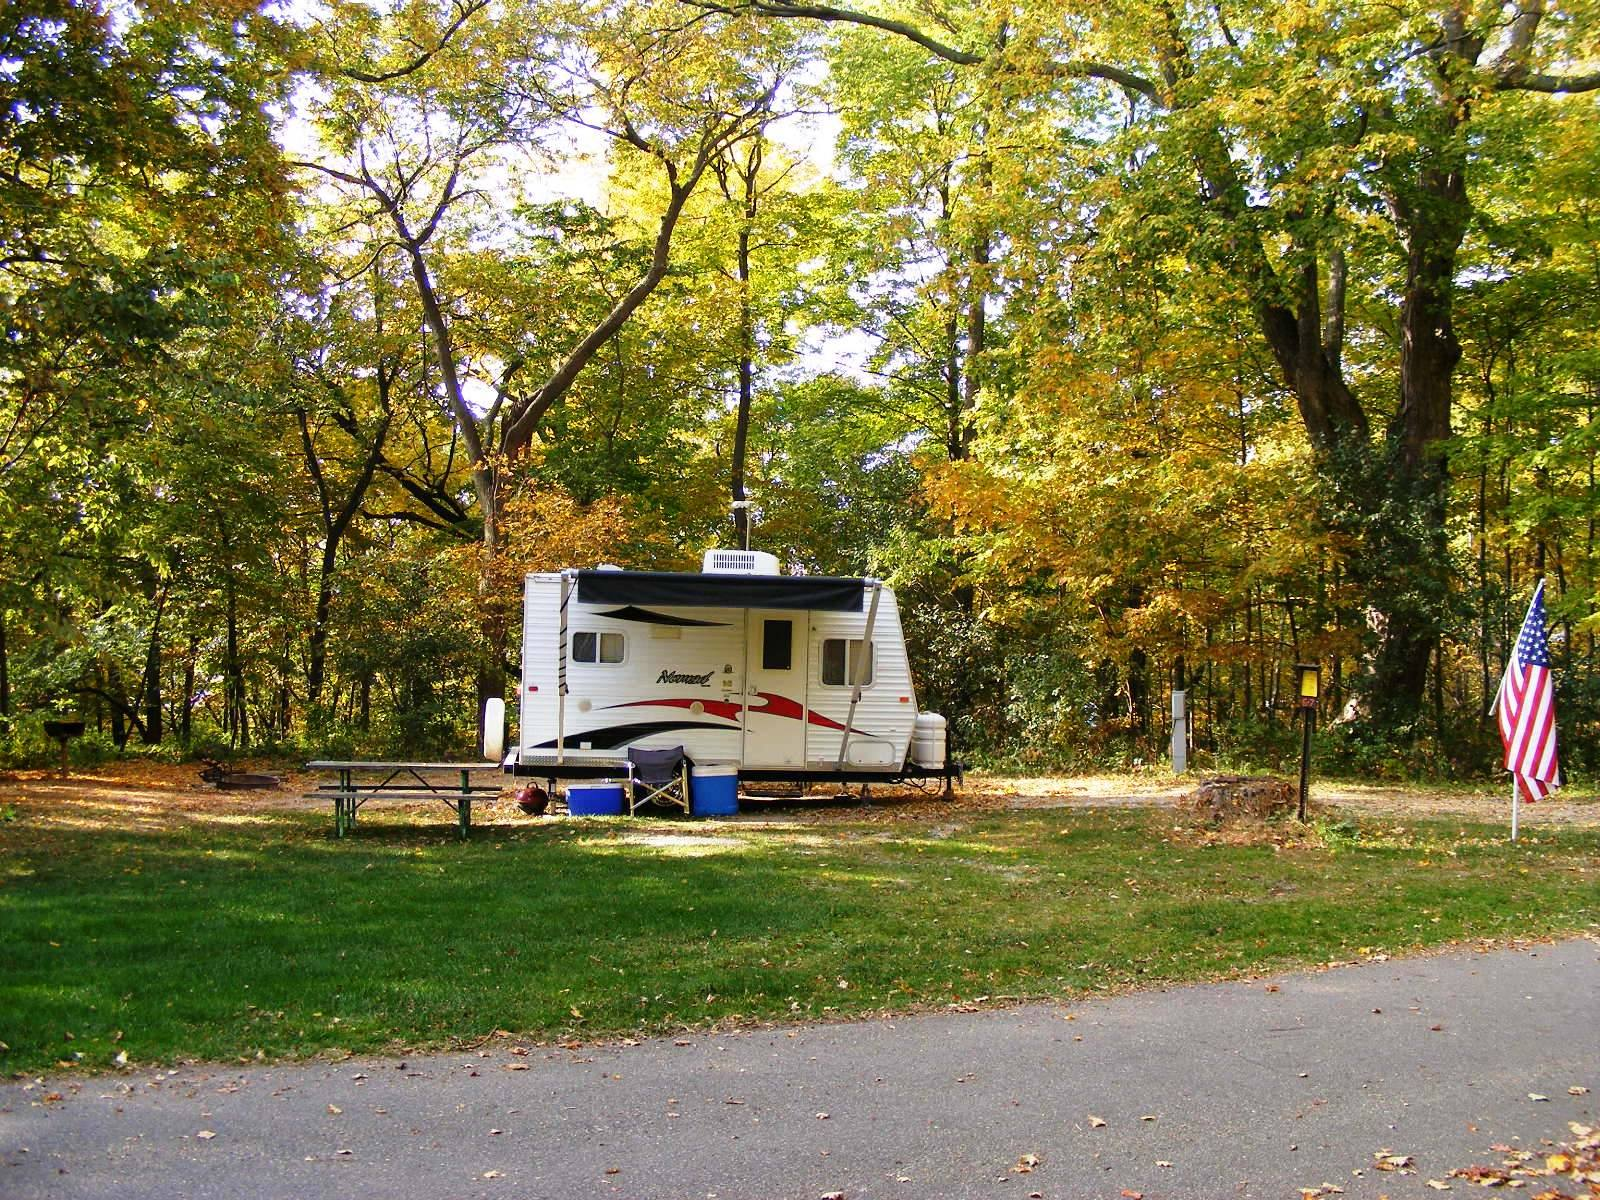 Camper in wooded area.